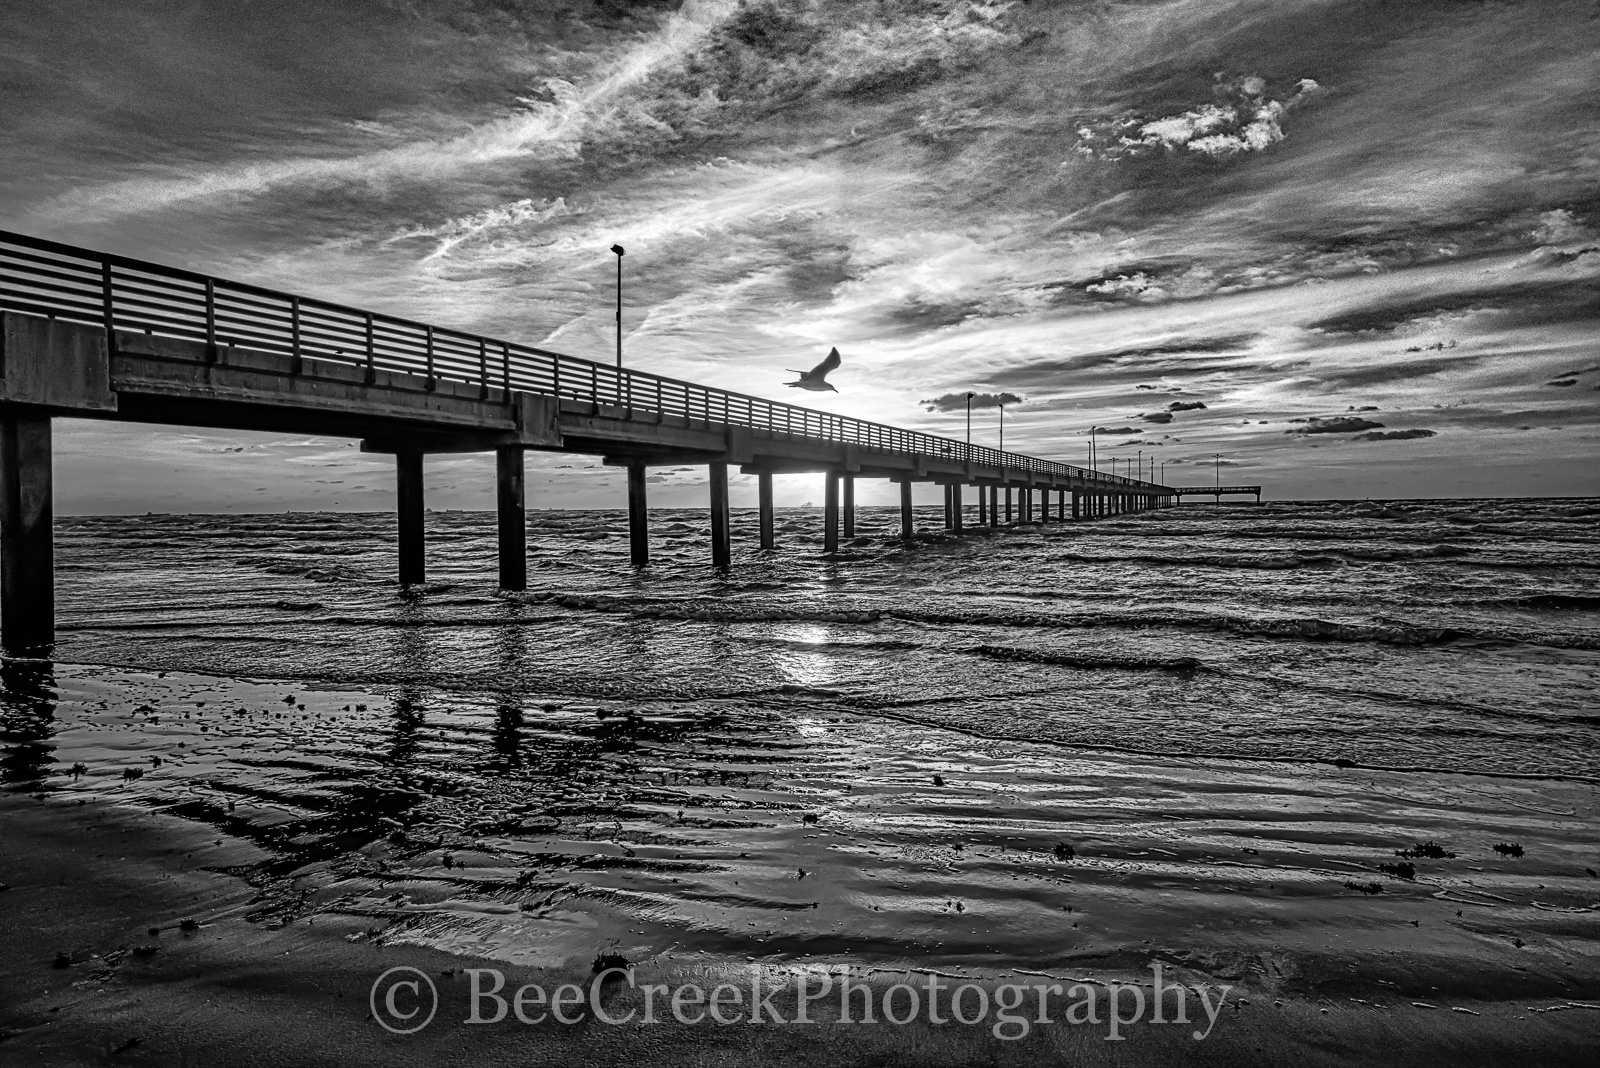 Coastal Pier, bird, black and white, bw, clouds, gulf coast, sand, sea gull, sun sunrise, surf, photo